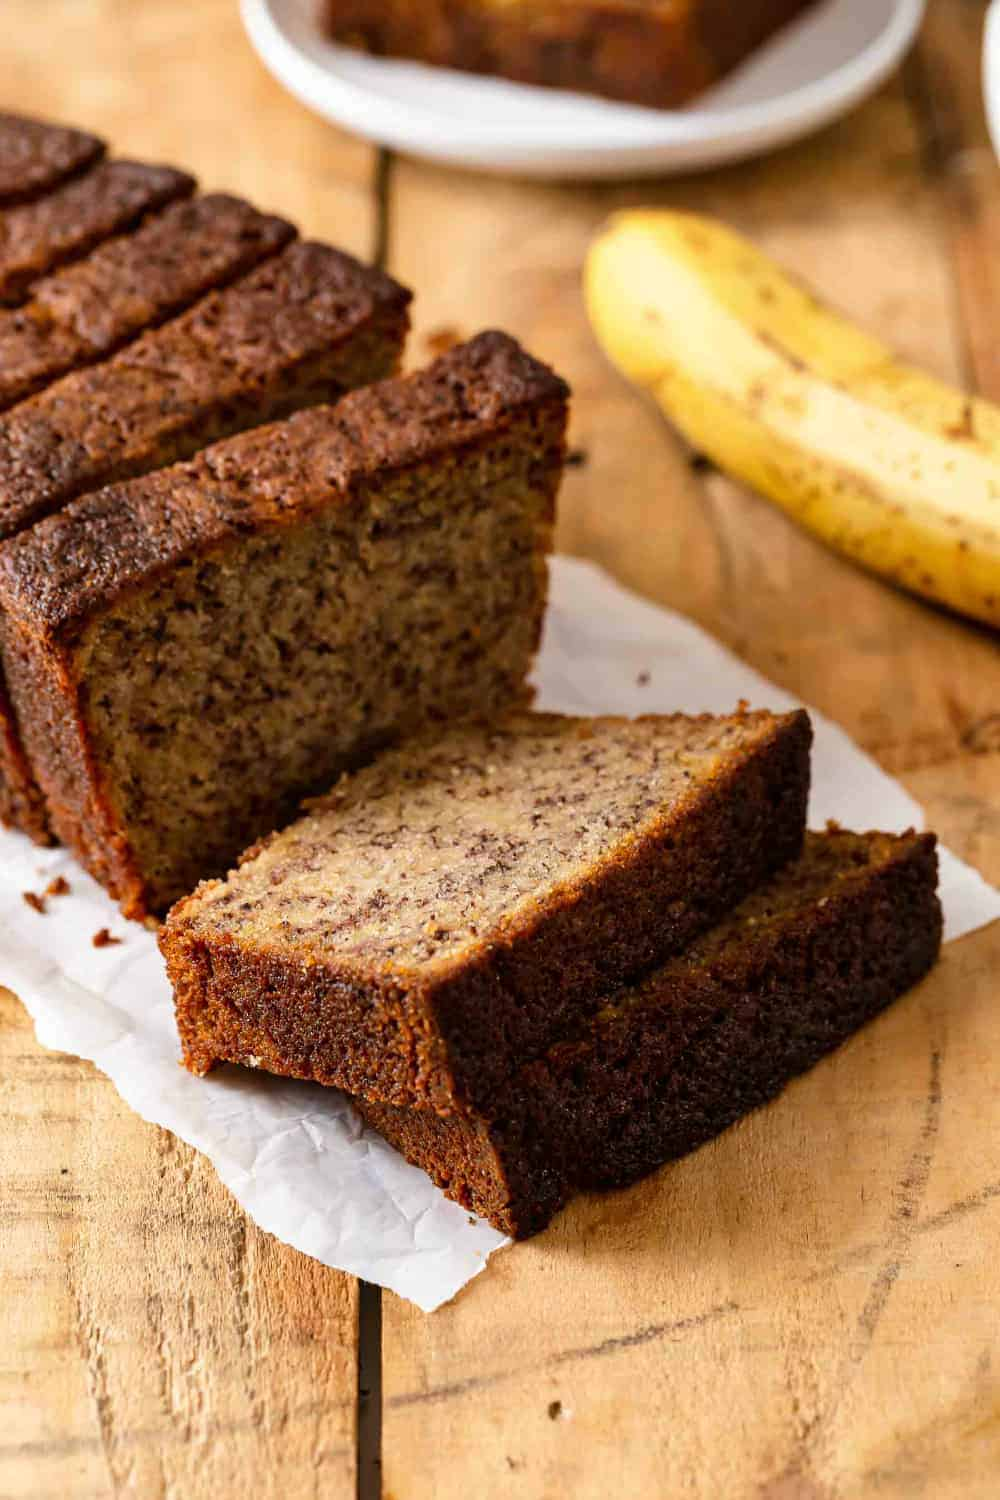 Sliced loaf of Dominique Ansel's banana bread, ready to serve